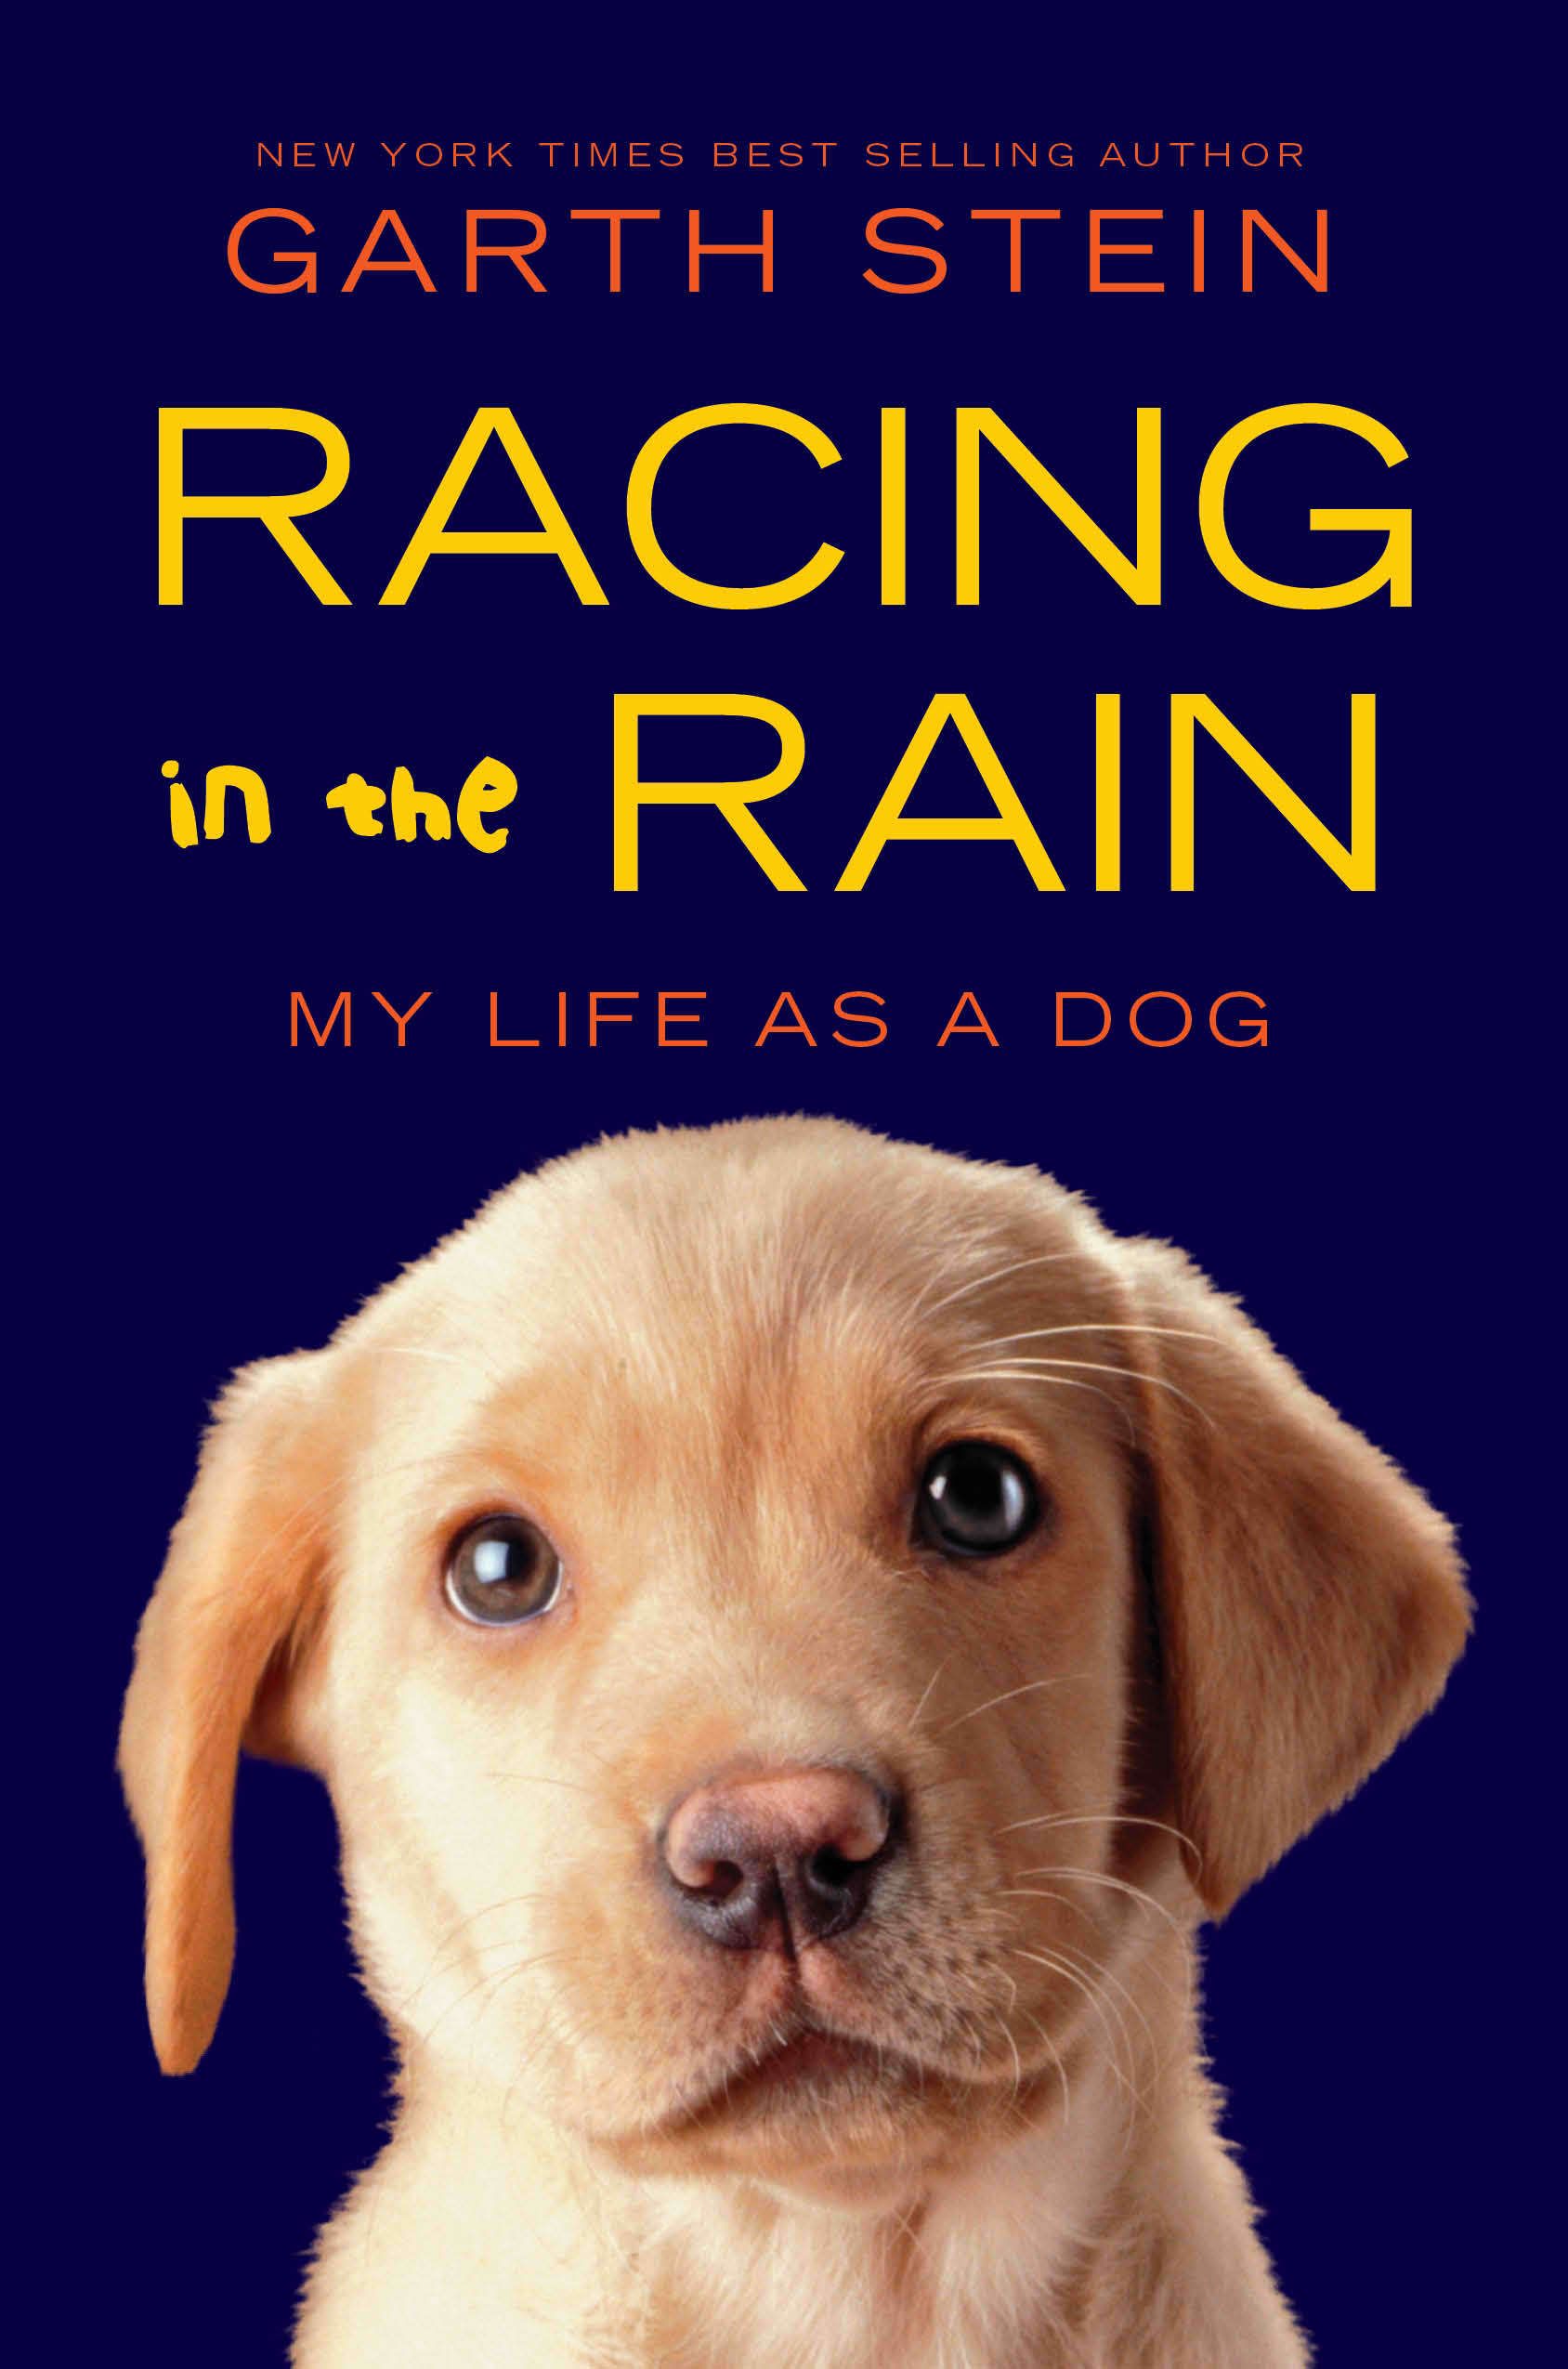 The Art of Racing in the Rain Summary & Study Guide